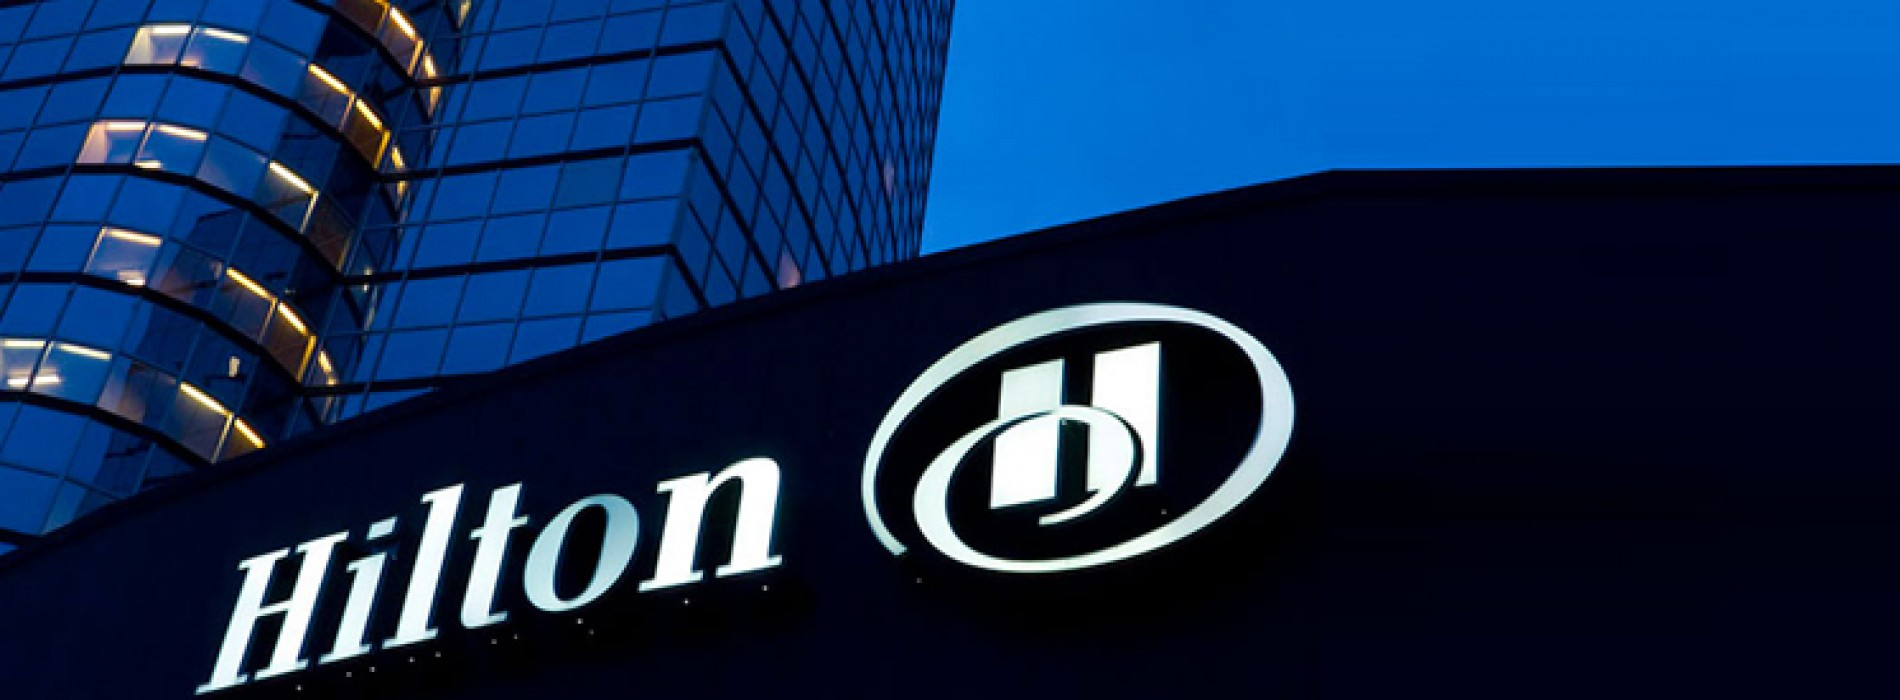 Hilton Worldwide Recruitment